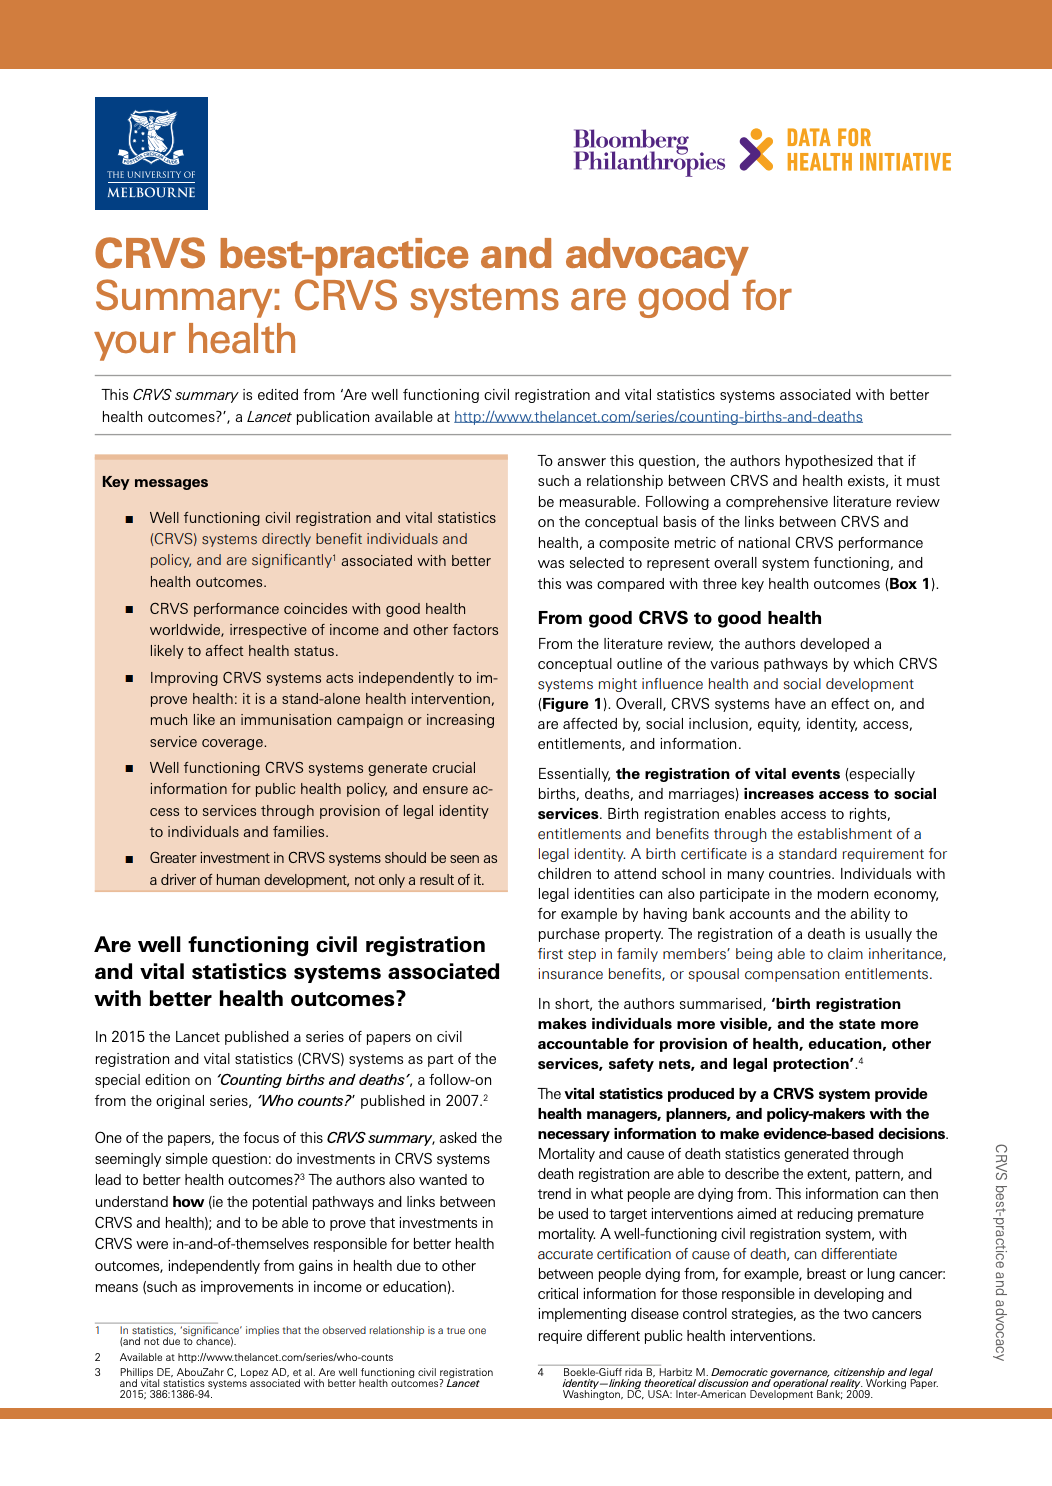 CRVS best-practice and advocacy Summary: CRVS systems are good for your health thumbnail